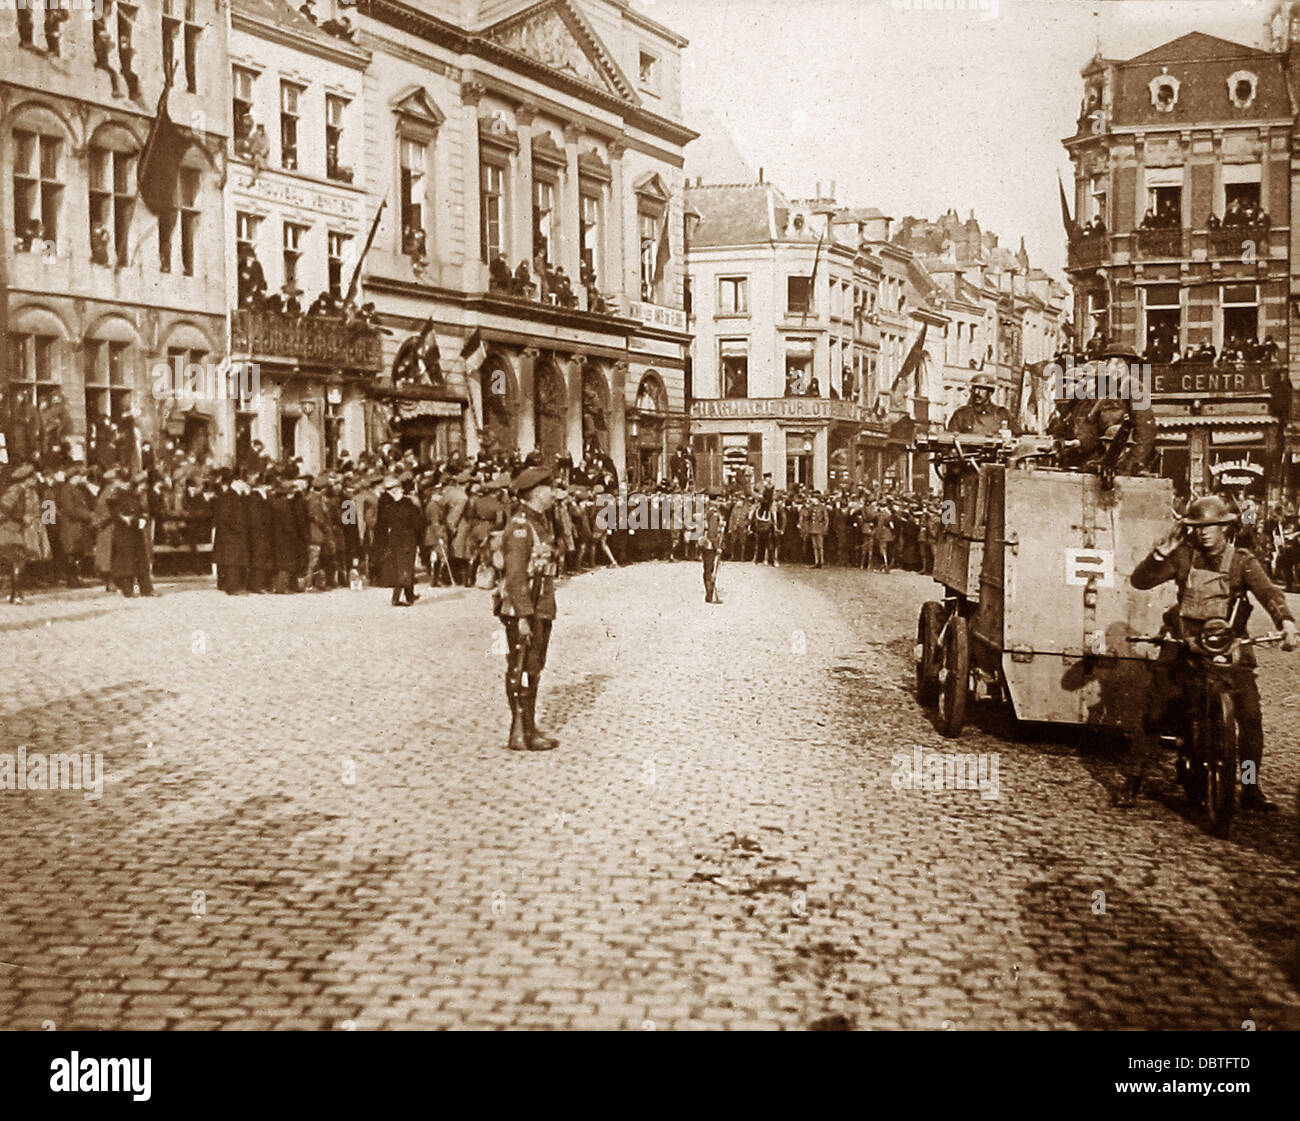 The First Commander inspecting troops in Mons during WW1 - Stock Image